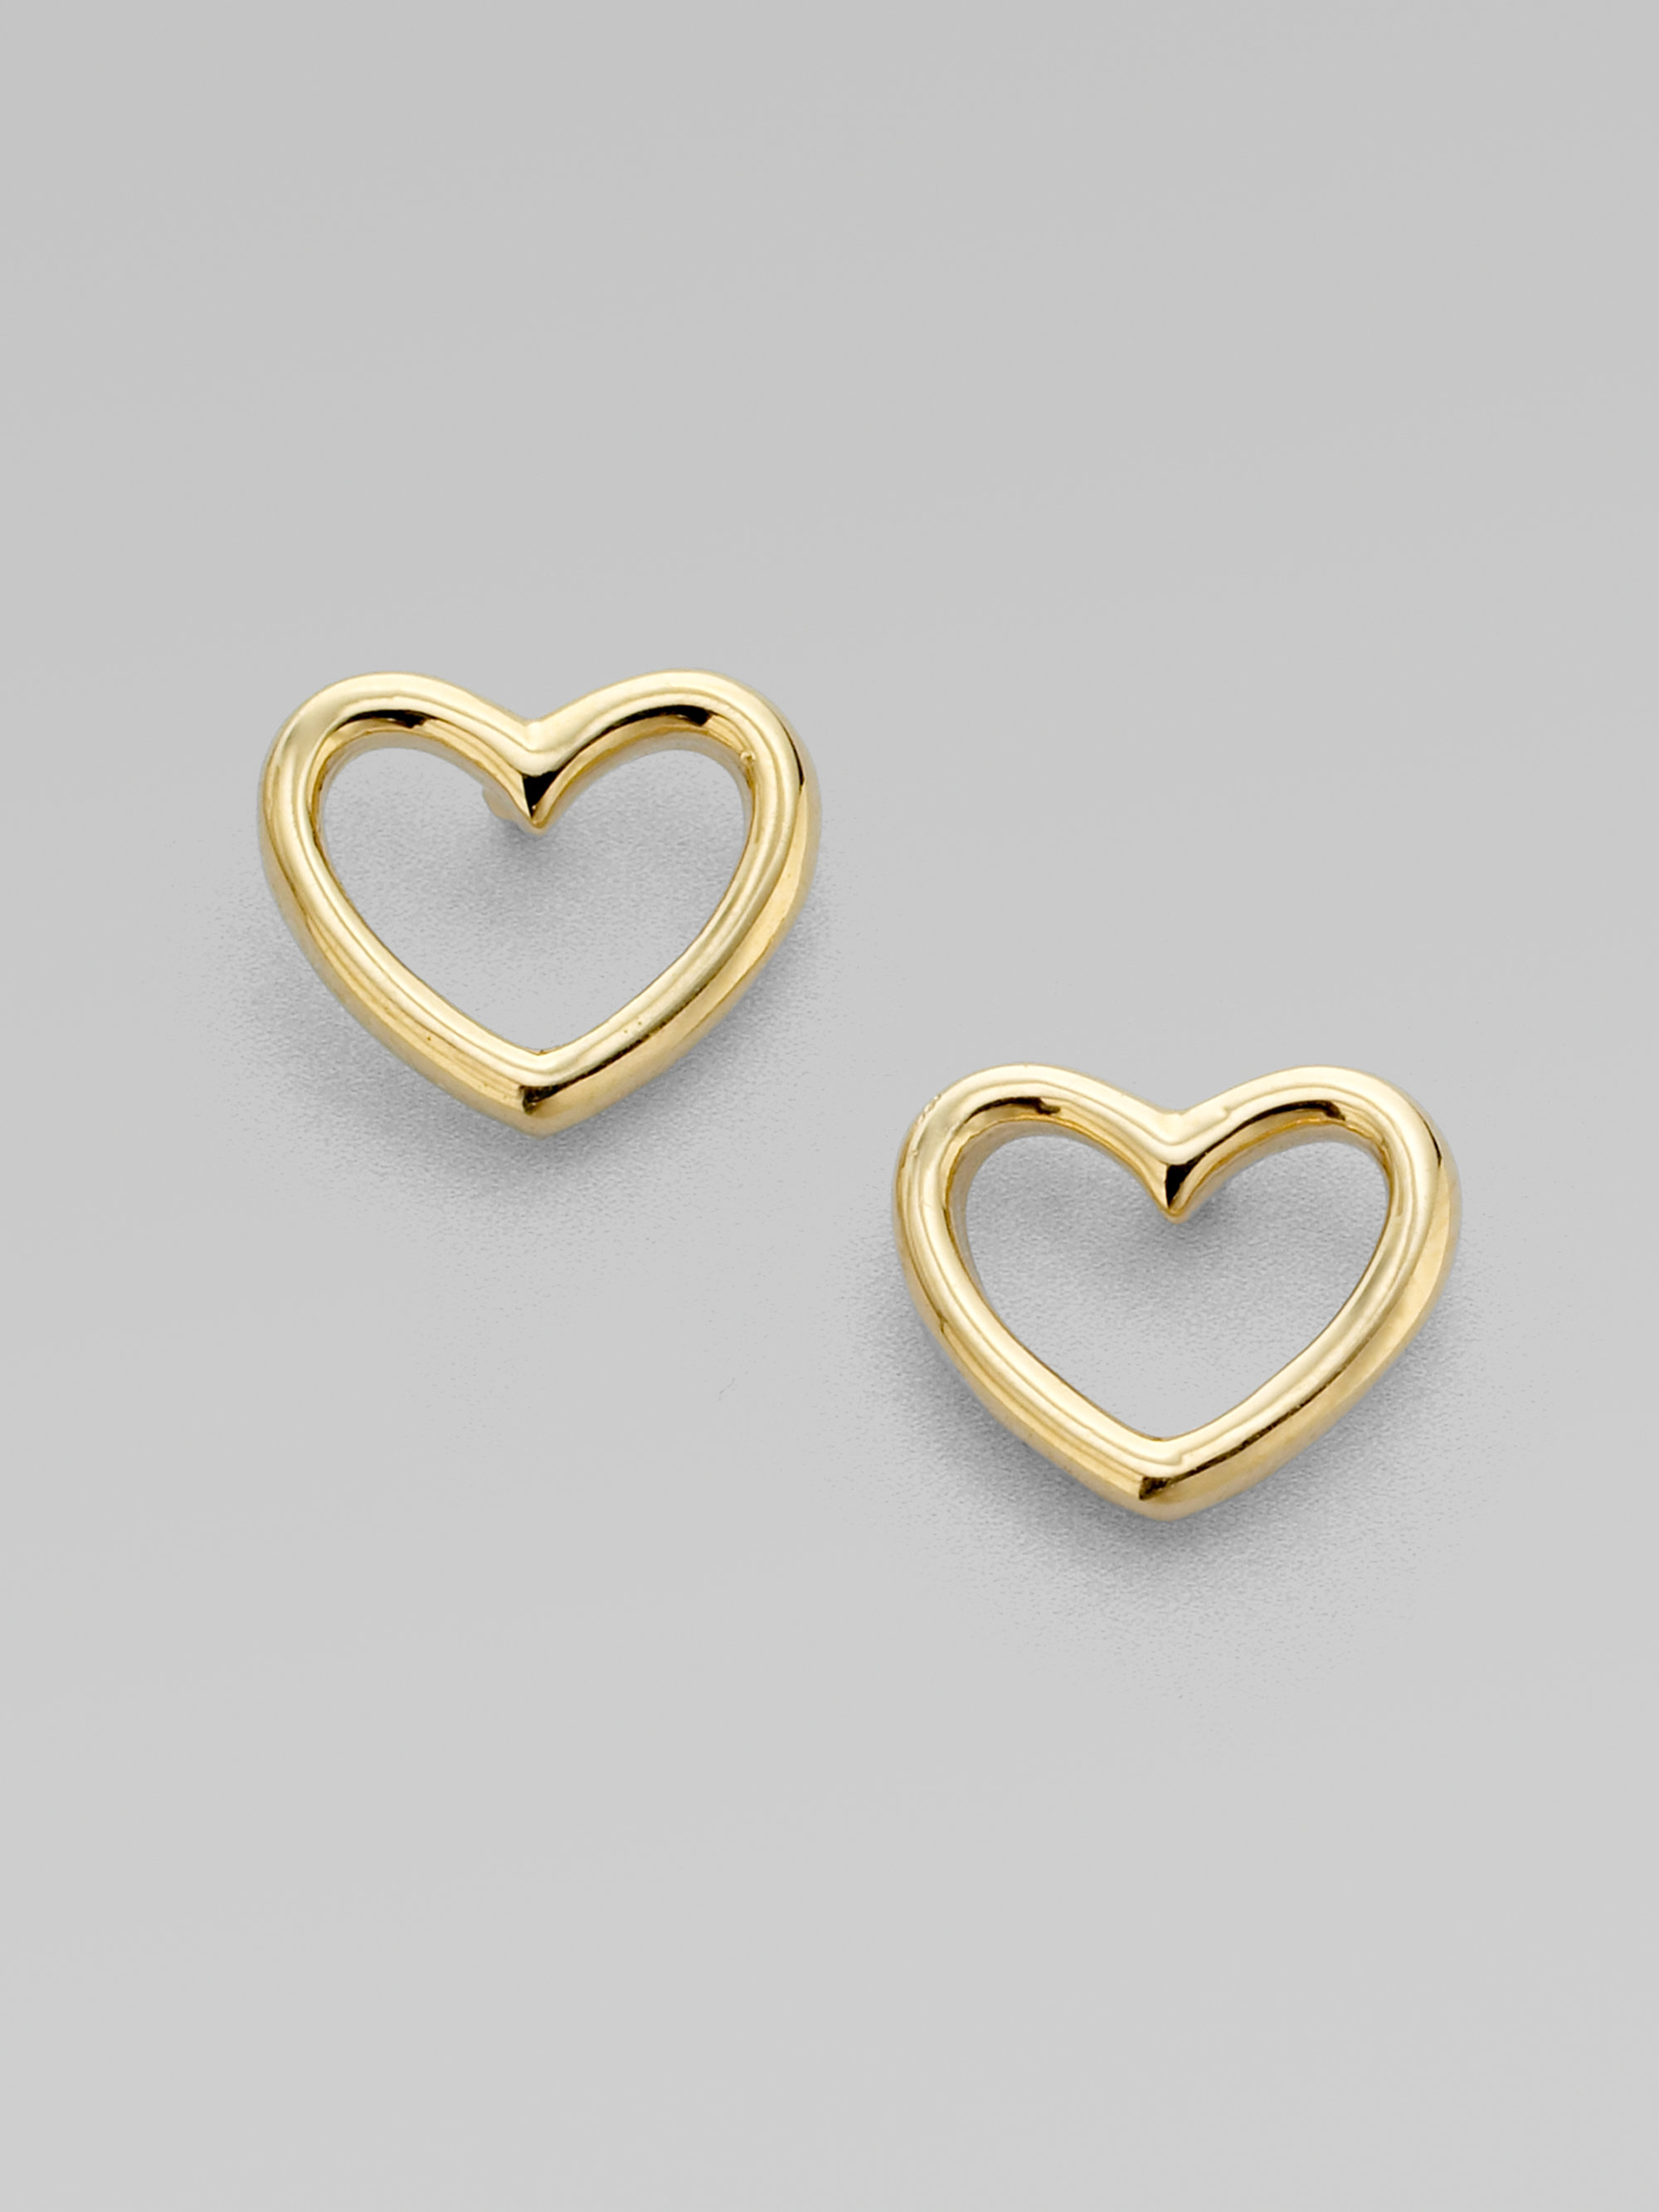 room hills gold property of heart earrings beverly pair shaped l